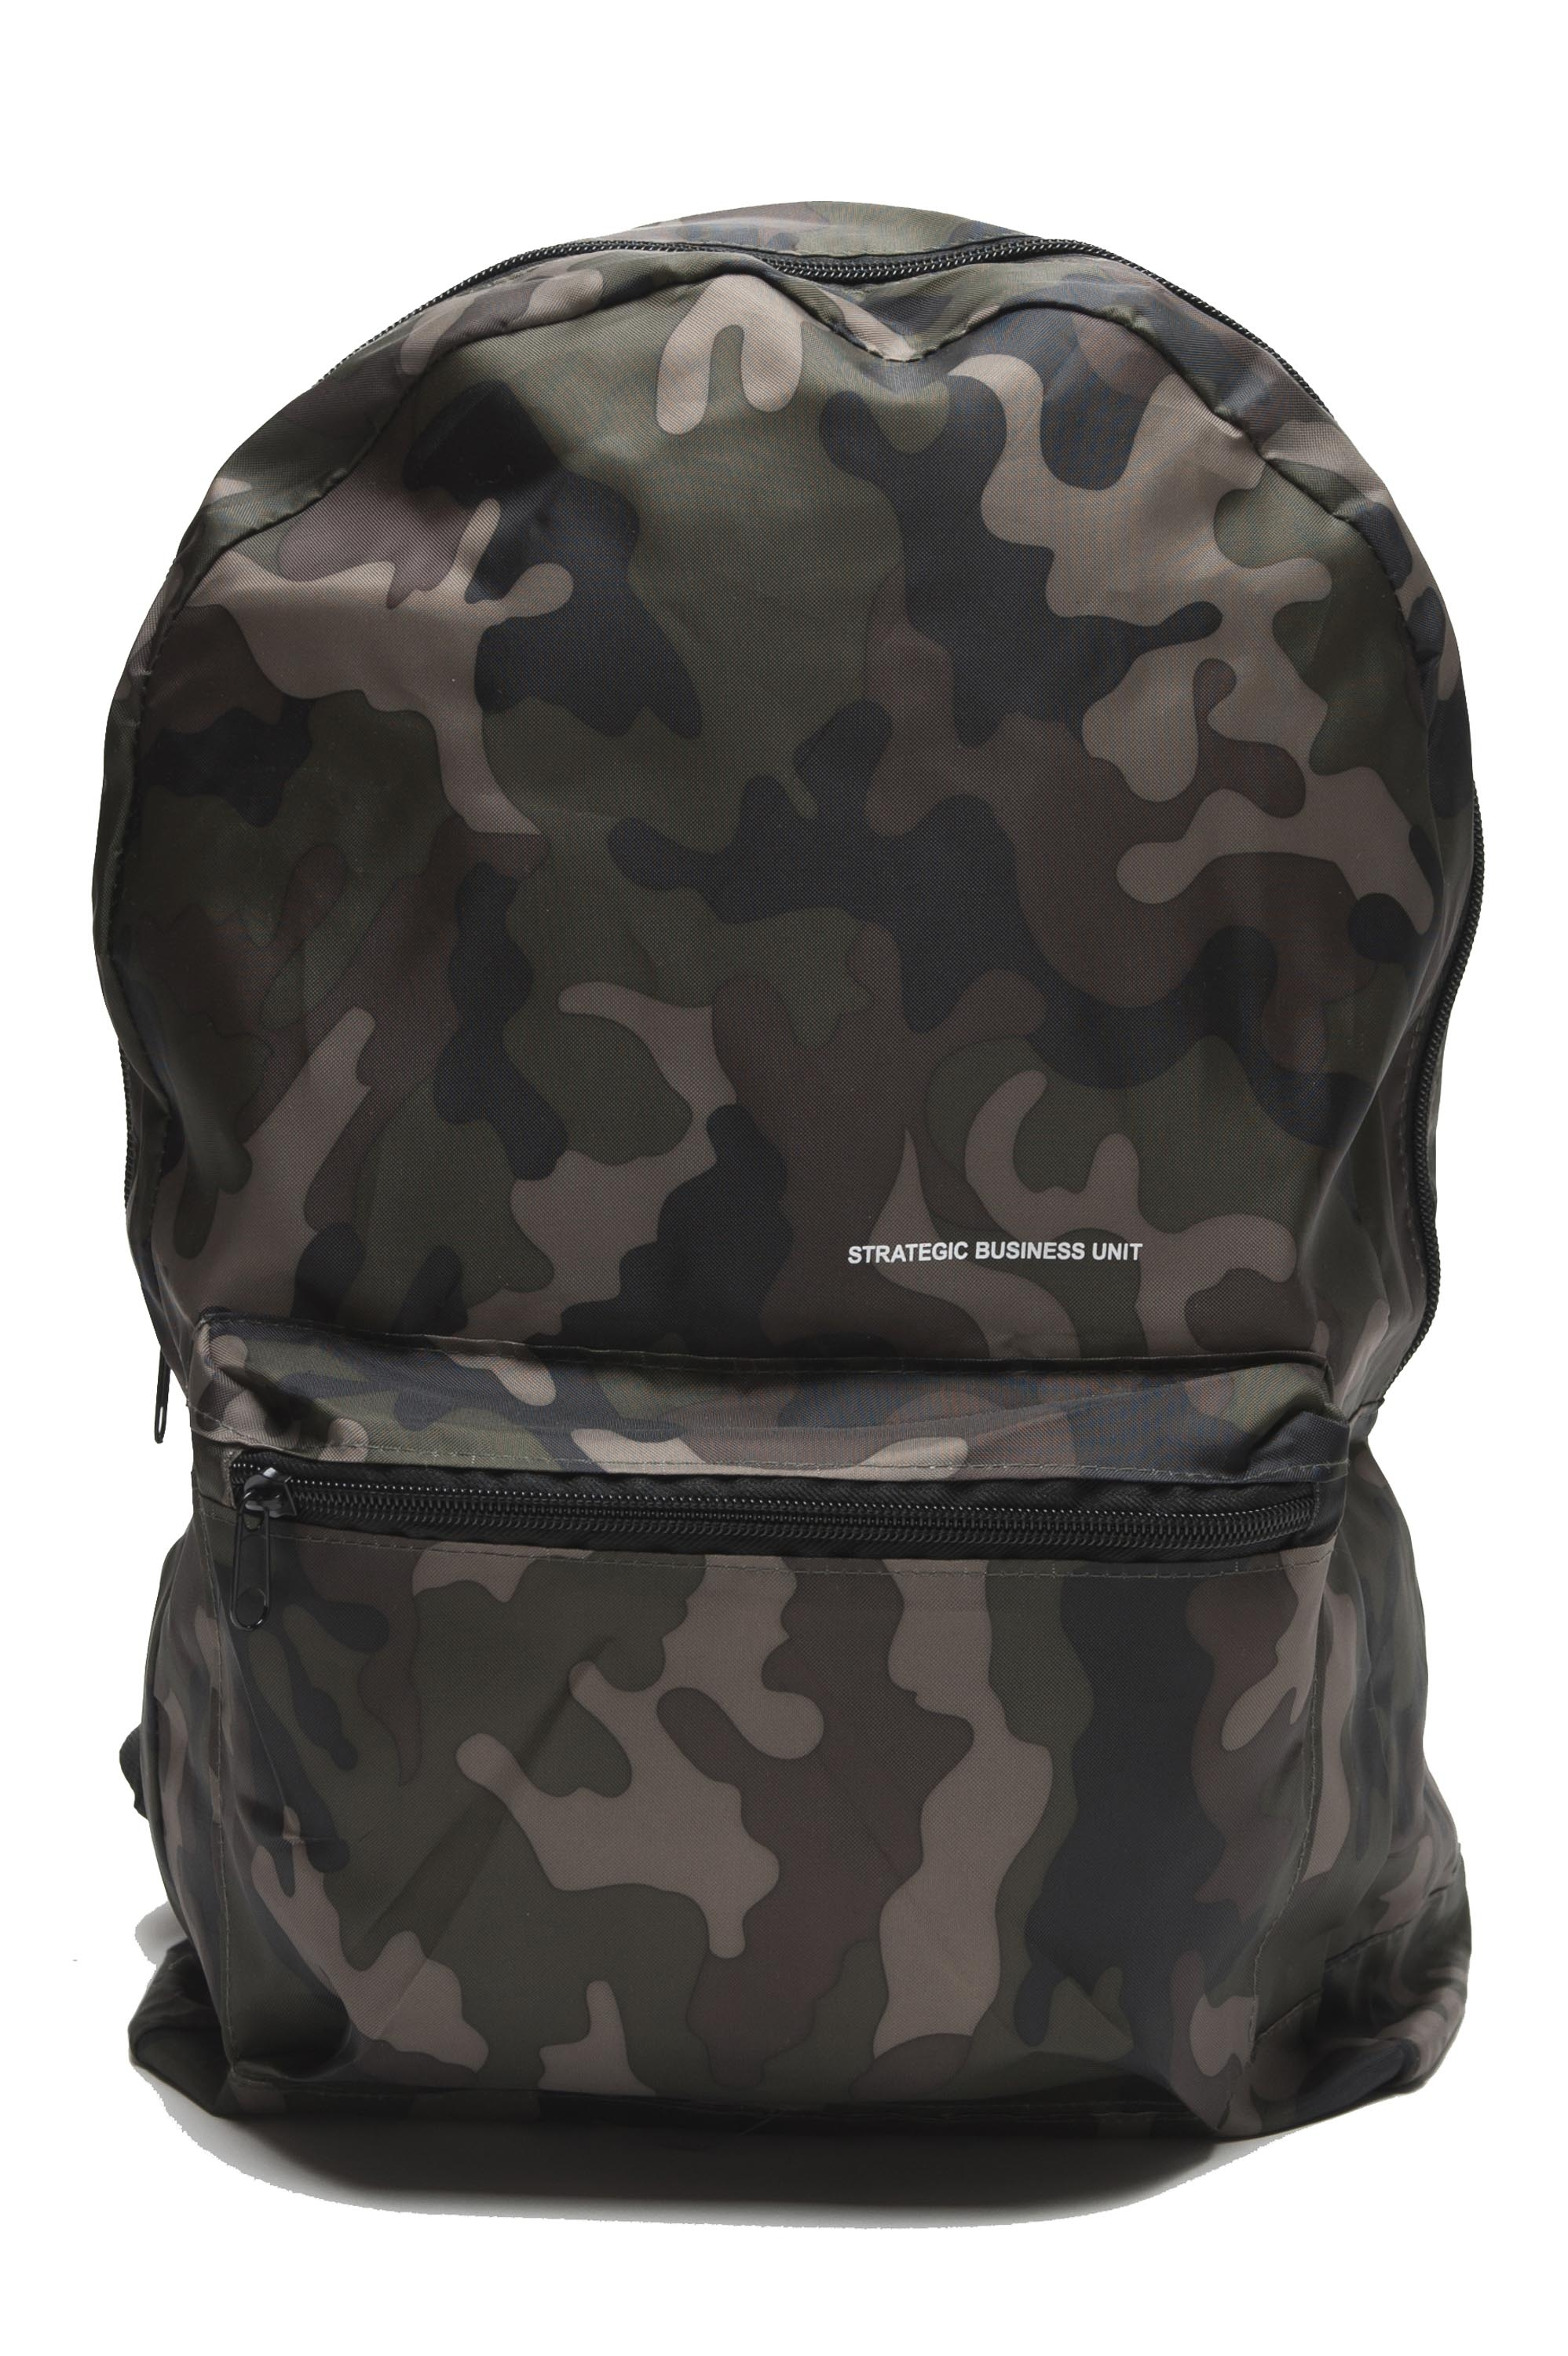 SBU 01805_19AW Camouflage tactical backpack 01